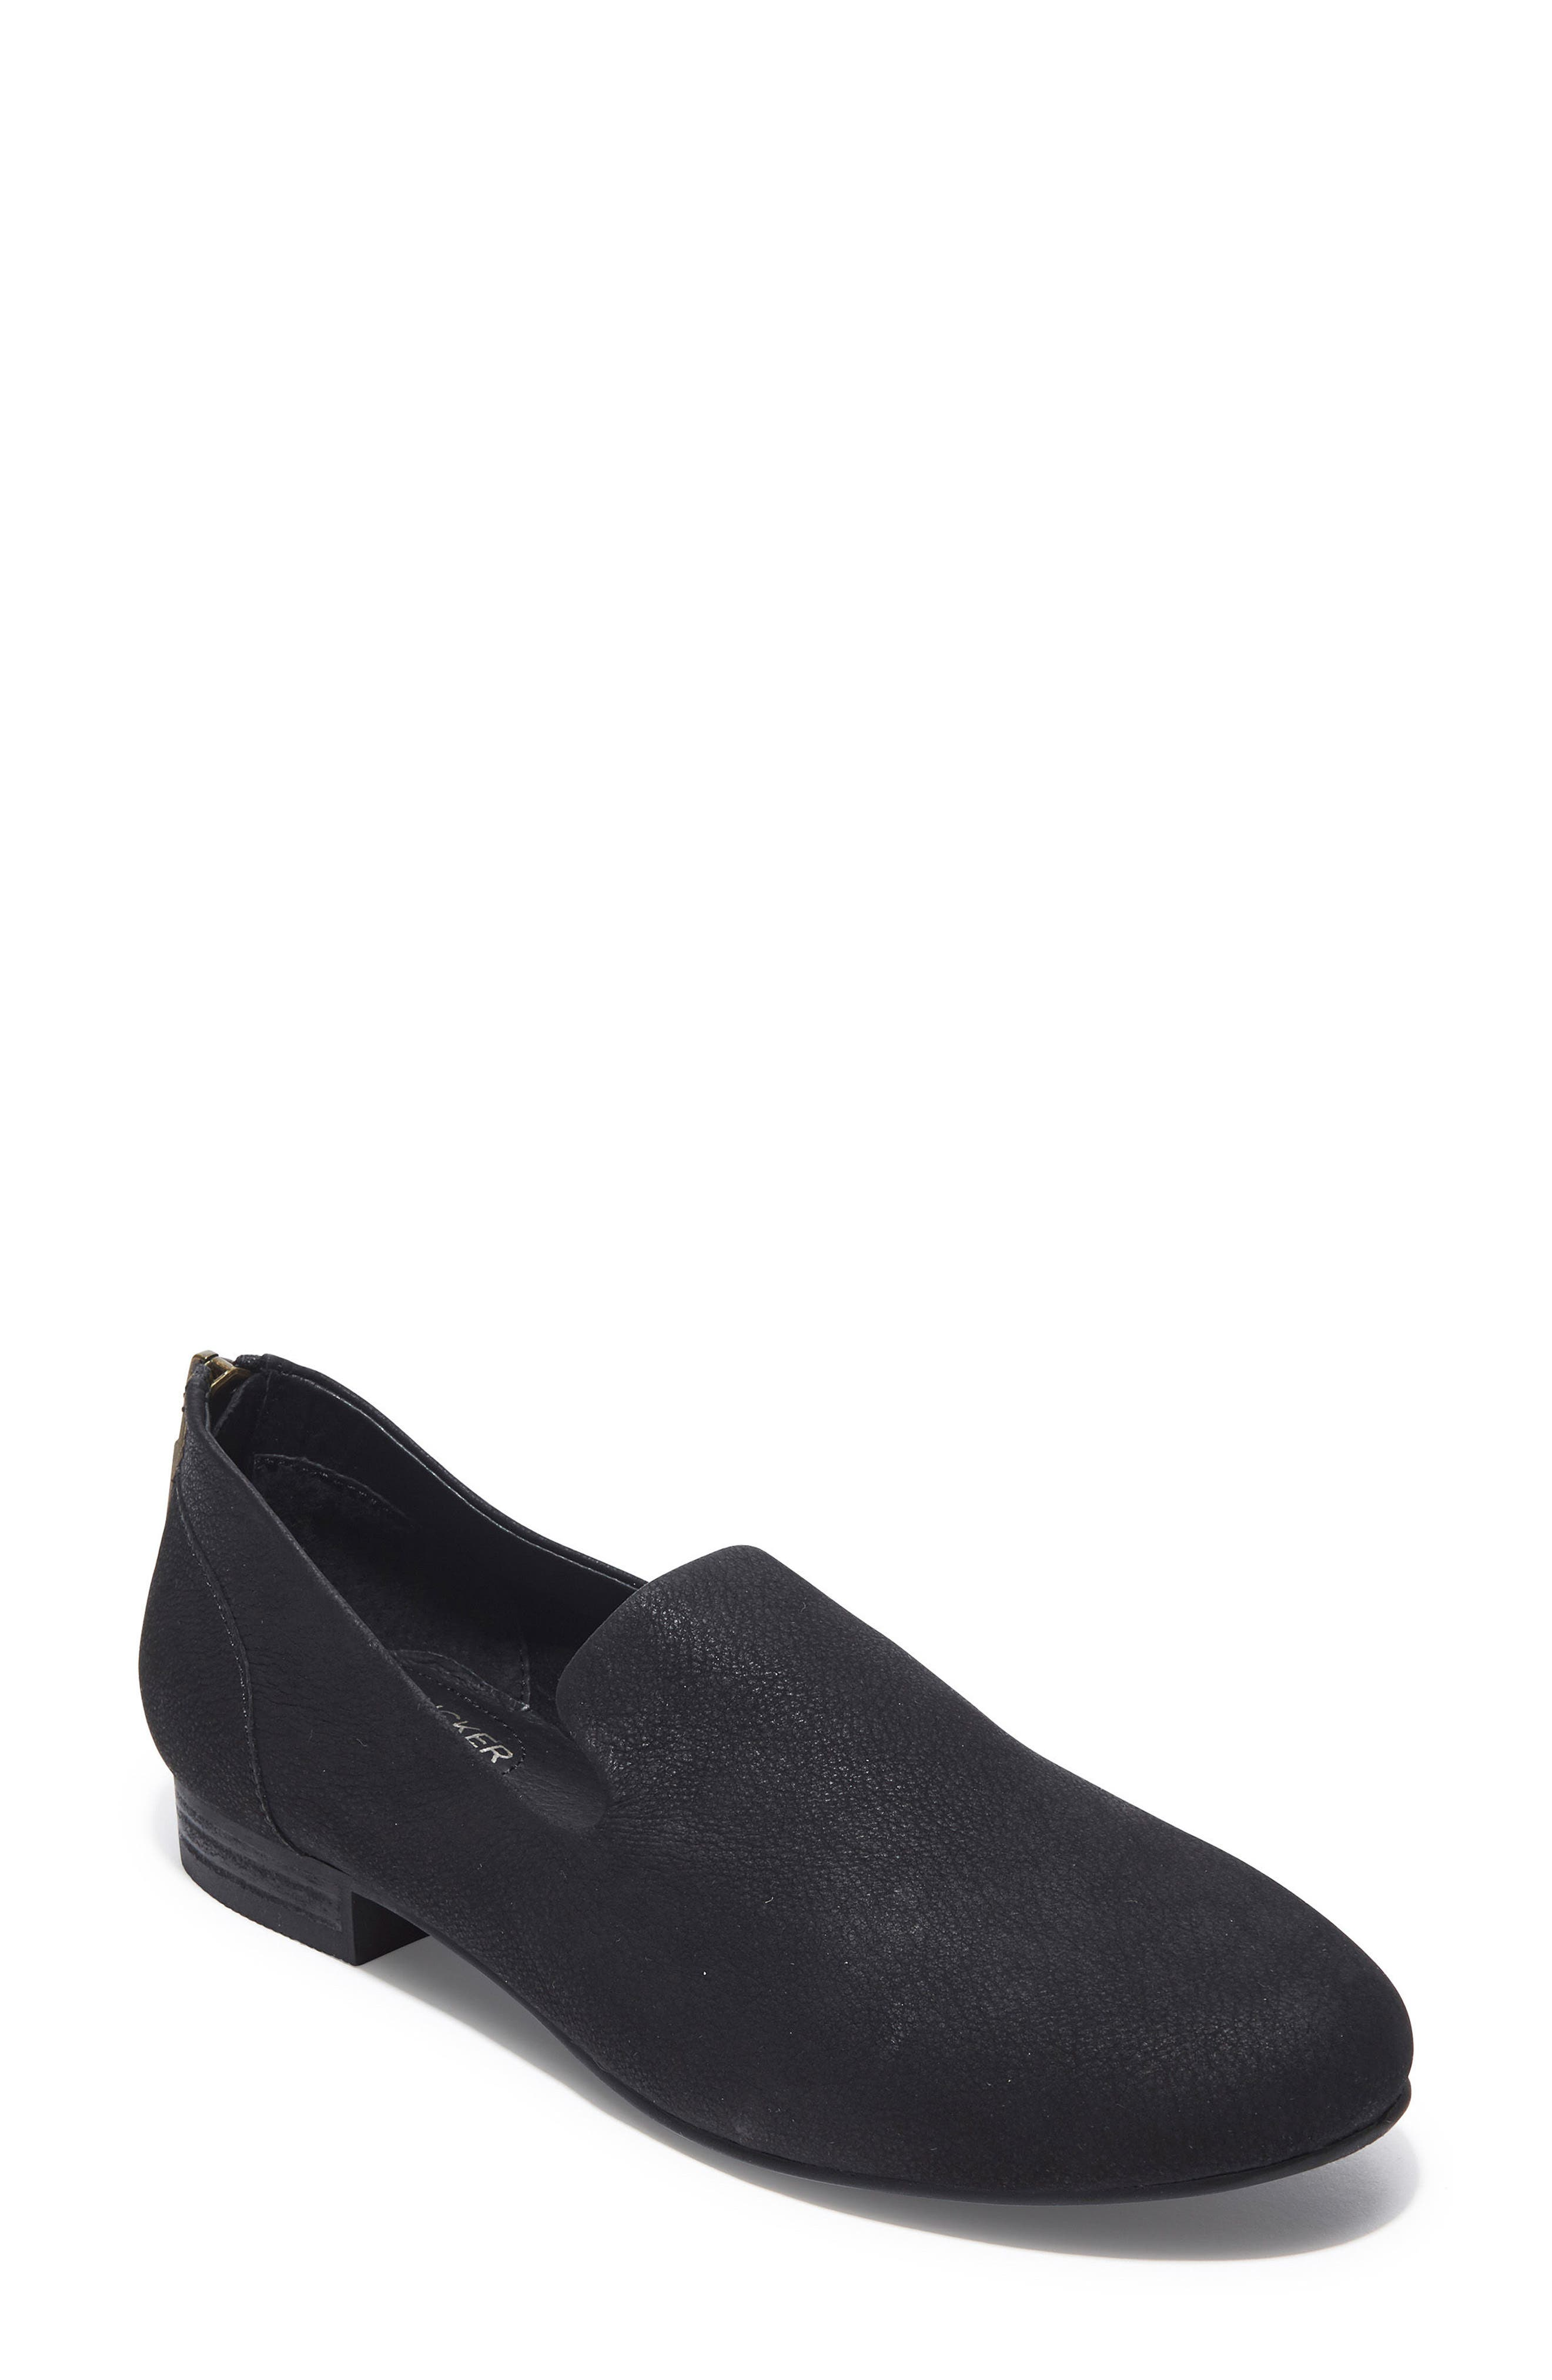 Marina Zip Loafer,                         Main,                         color,